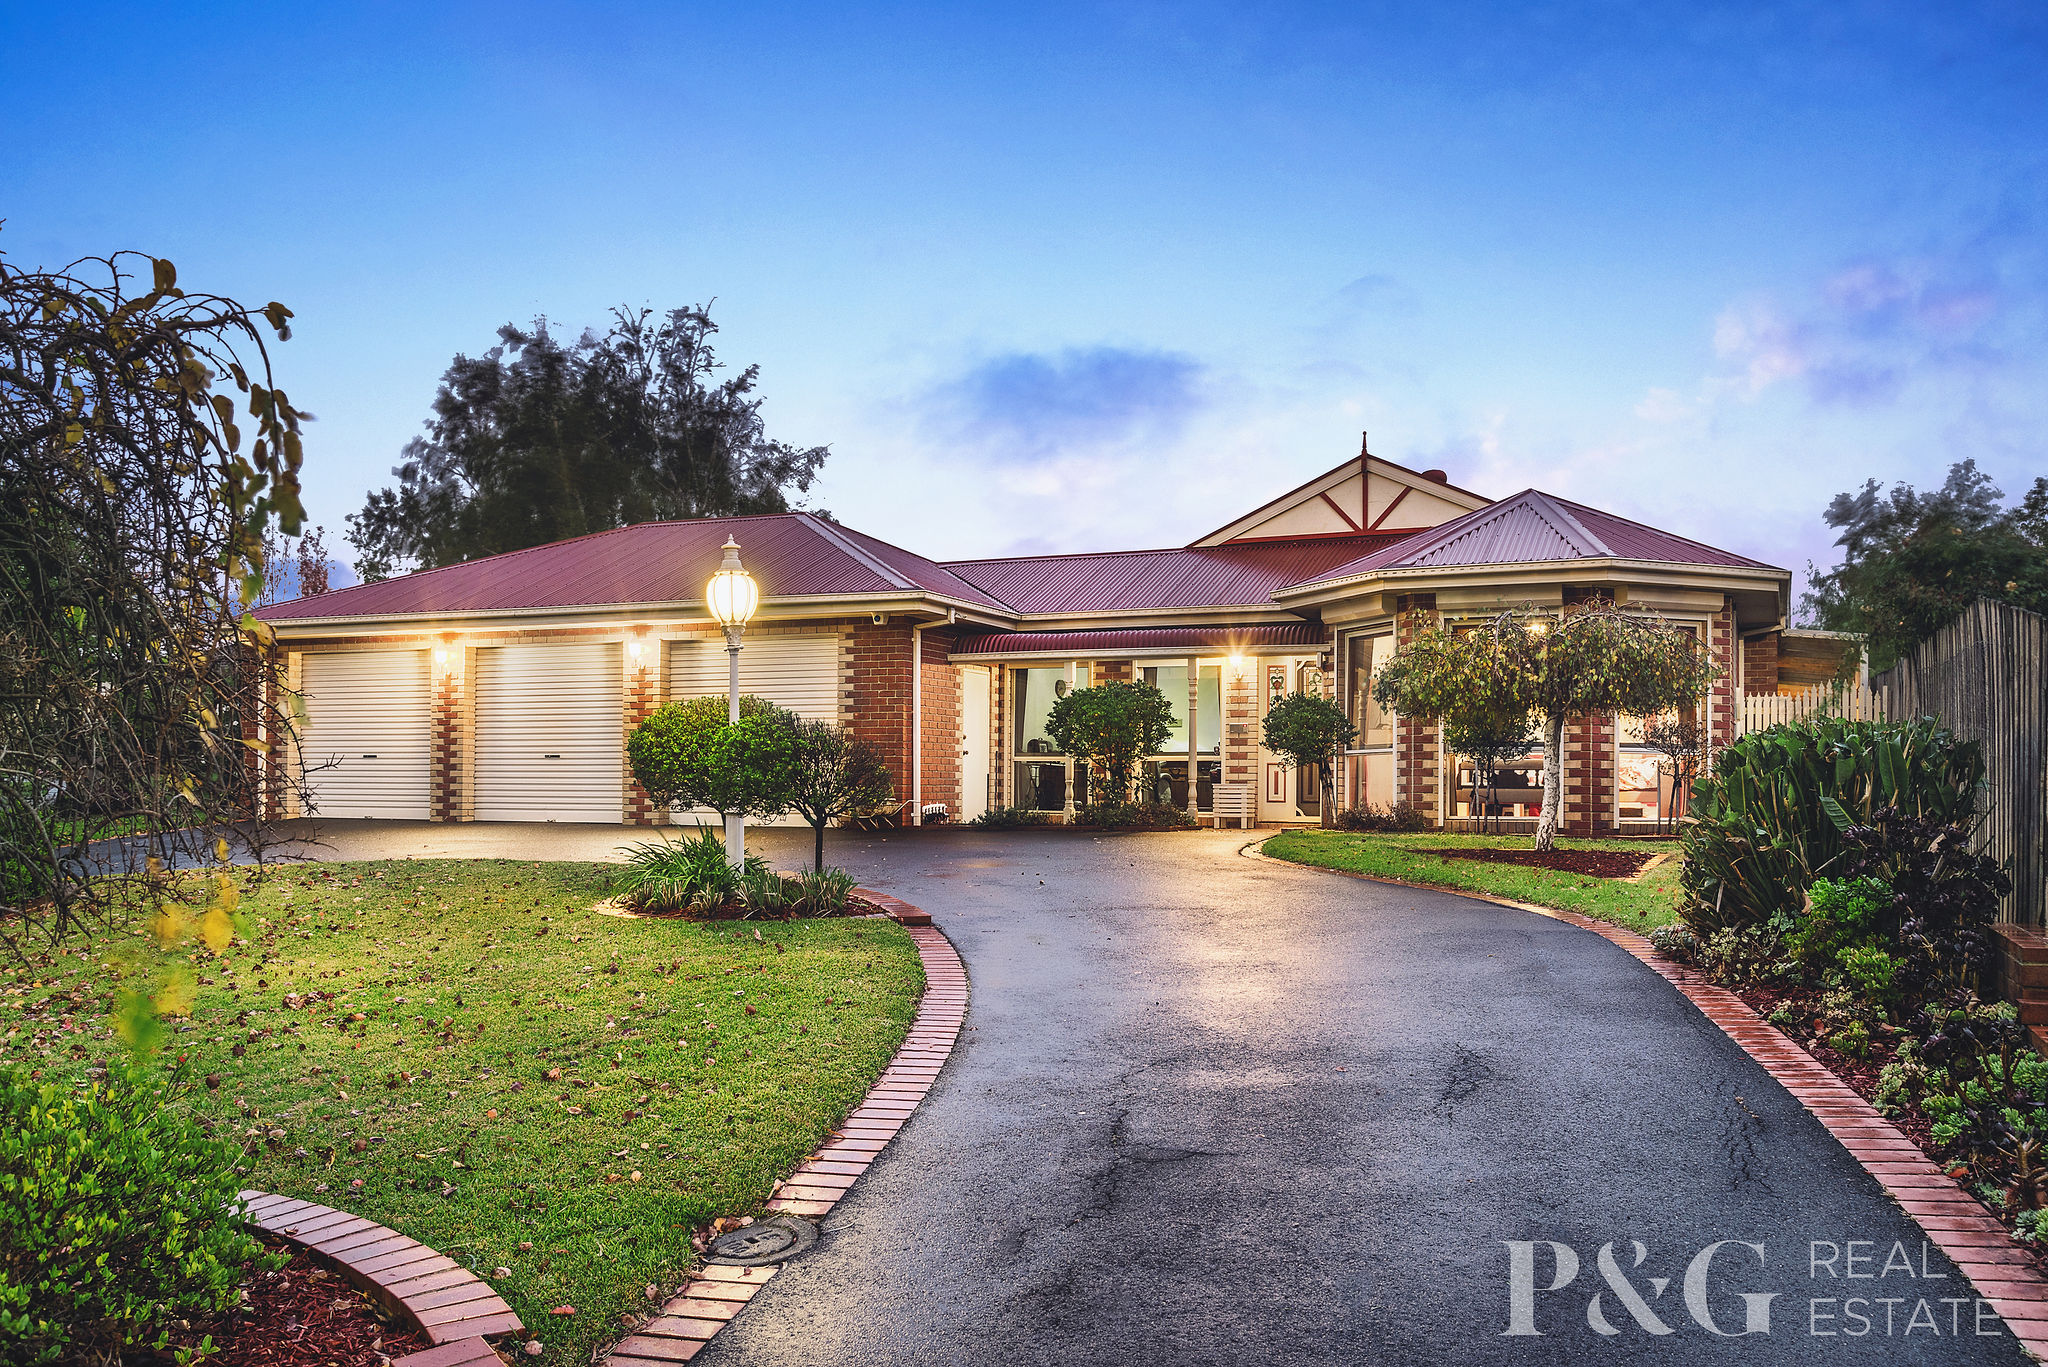 8 Lakeview Terrace, BEACONSFIELD, VIC, 3807 - Image